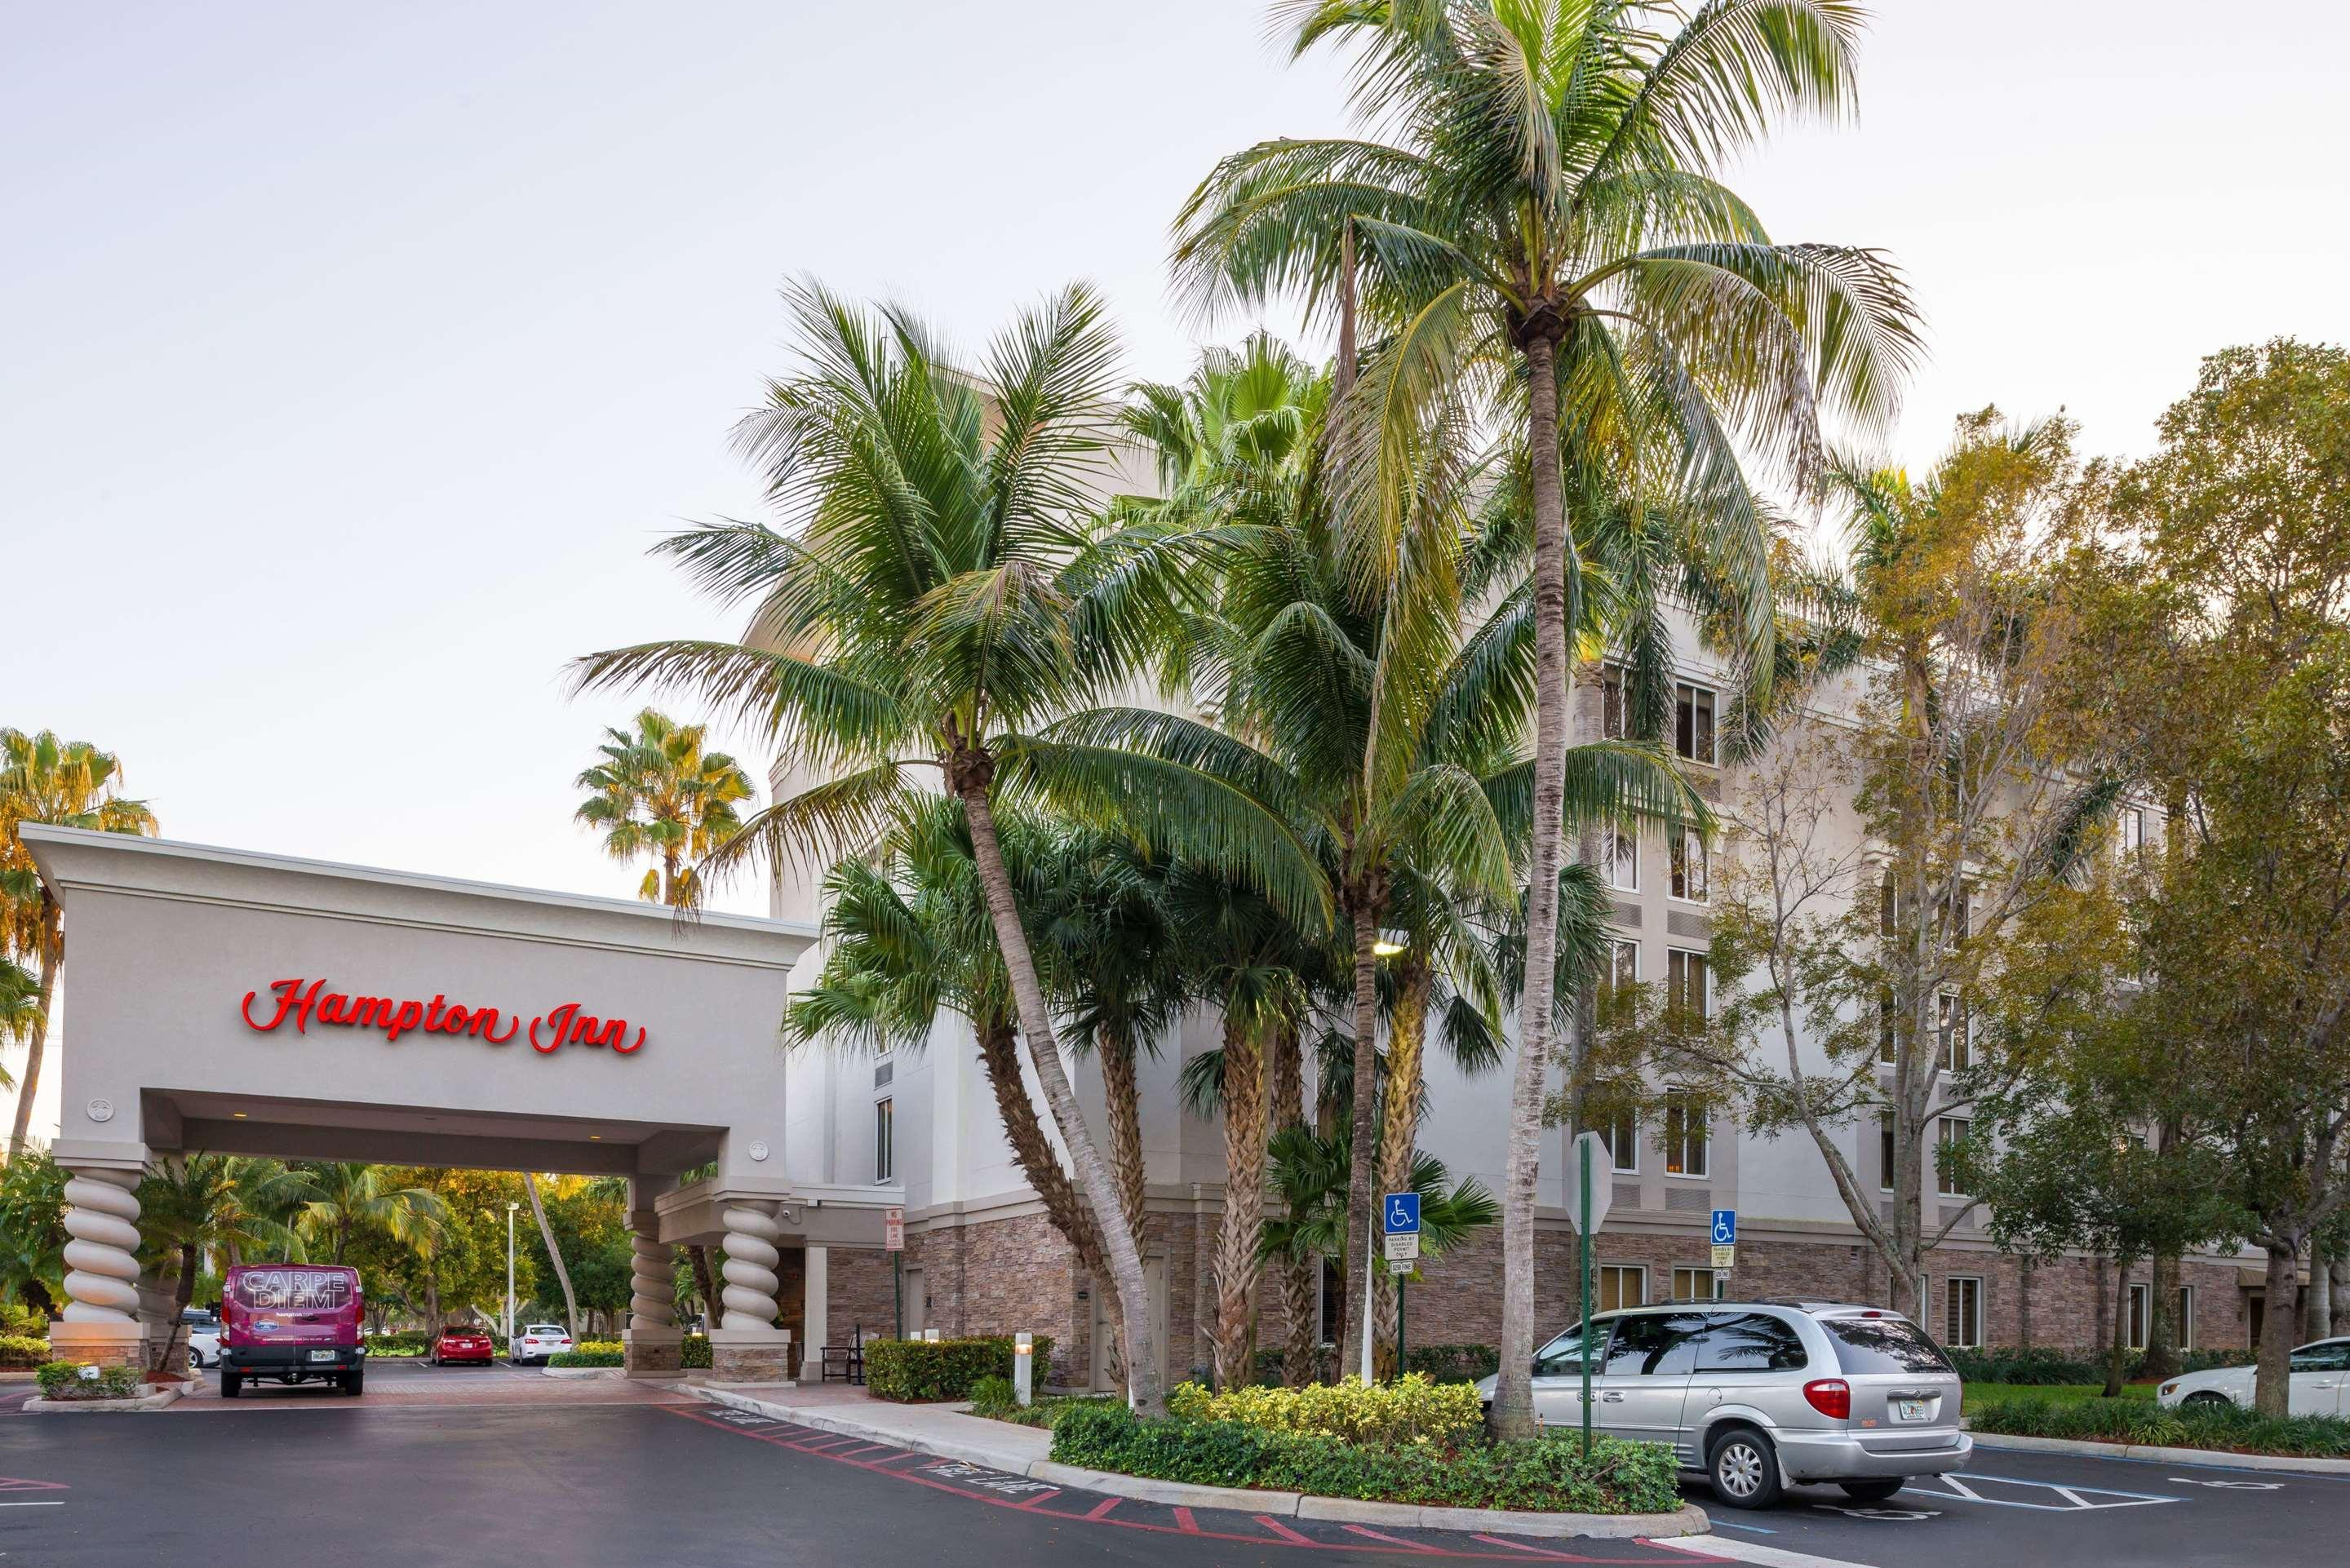 Hampton Inn - Ft. Lauderdale / Plantation